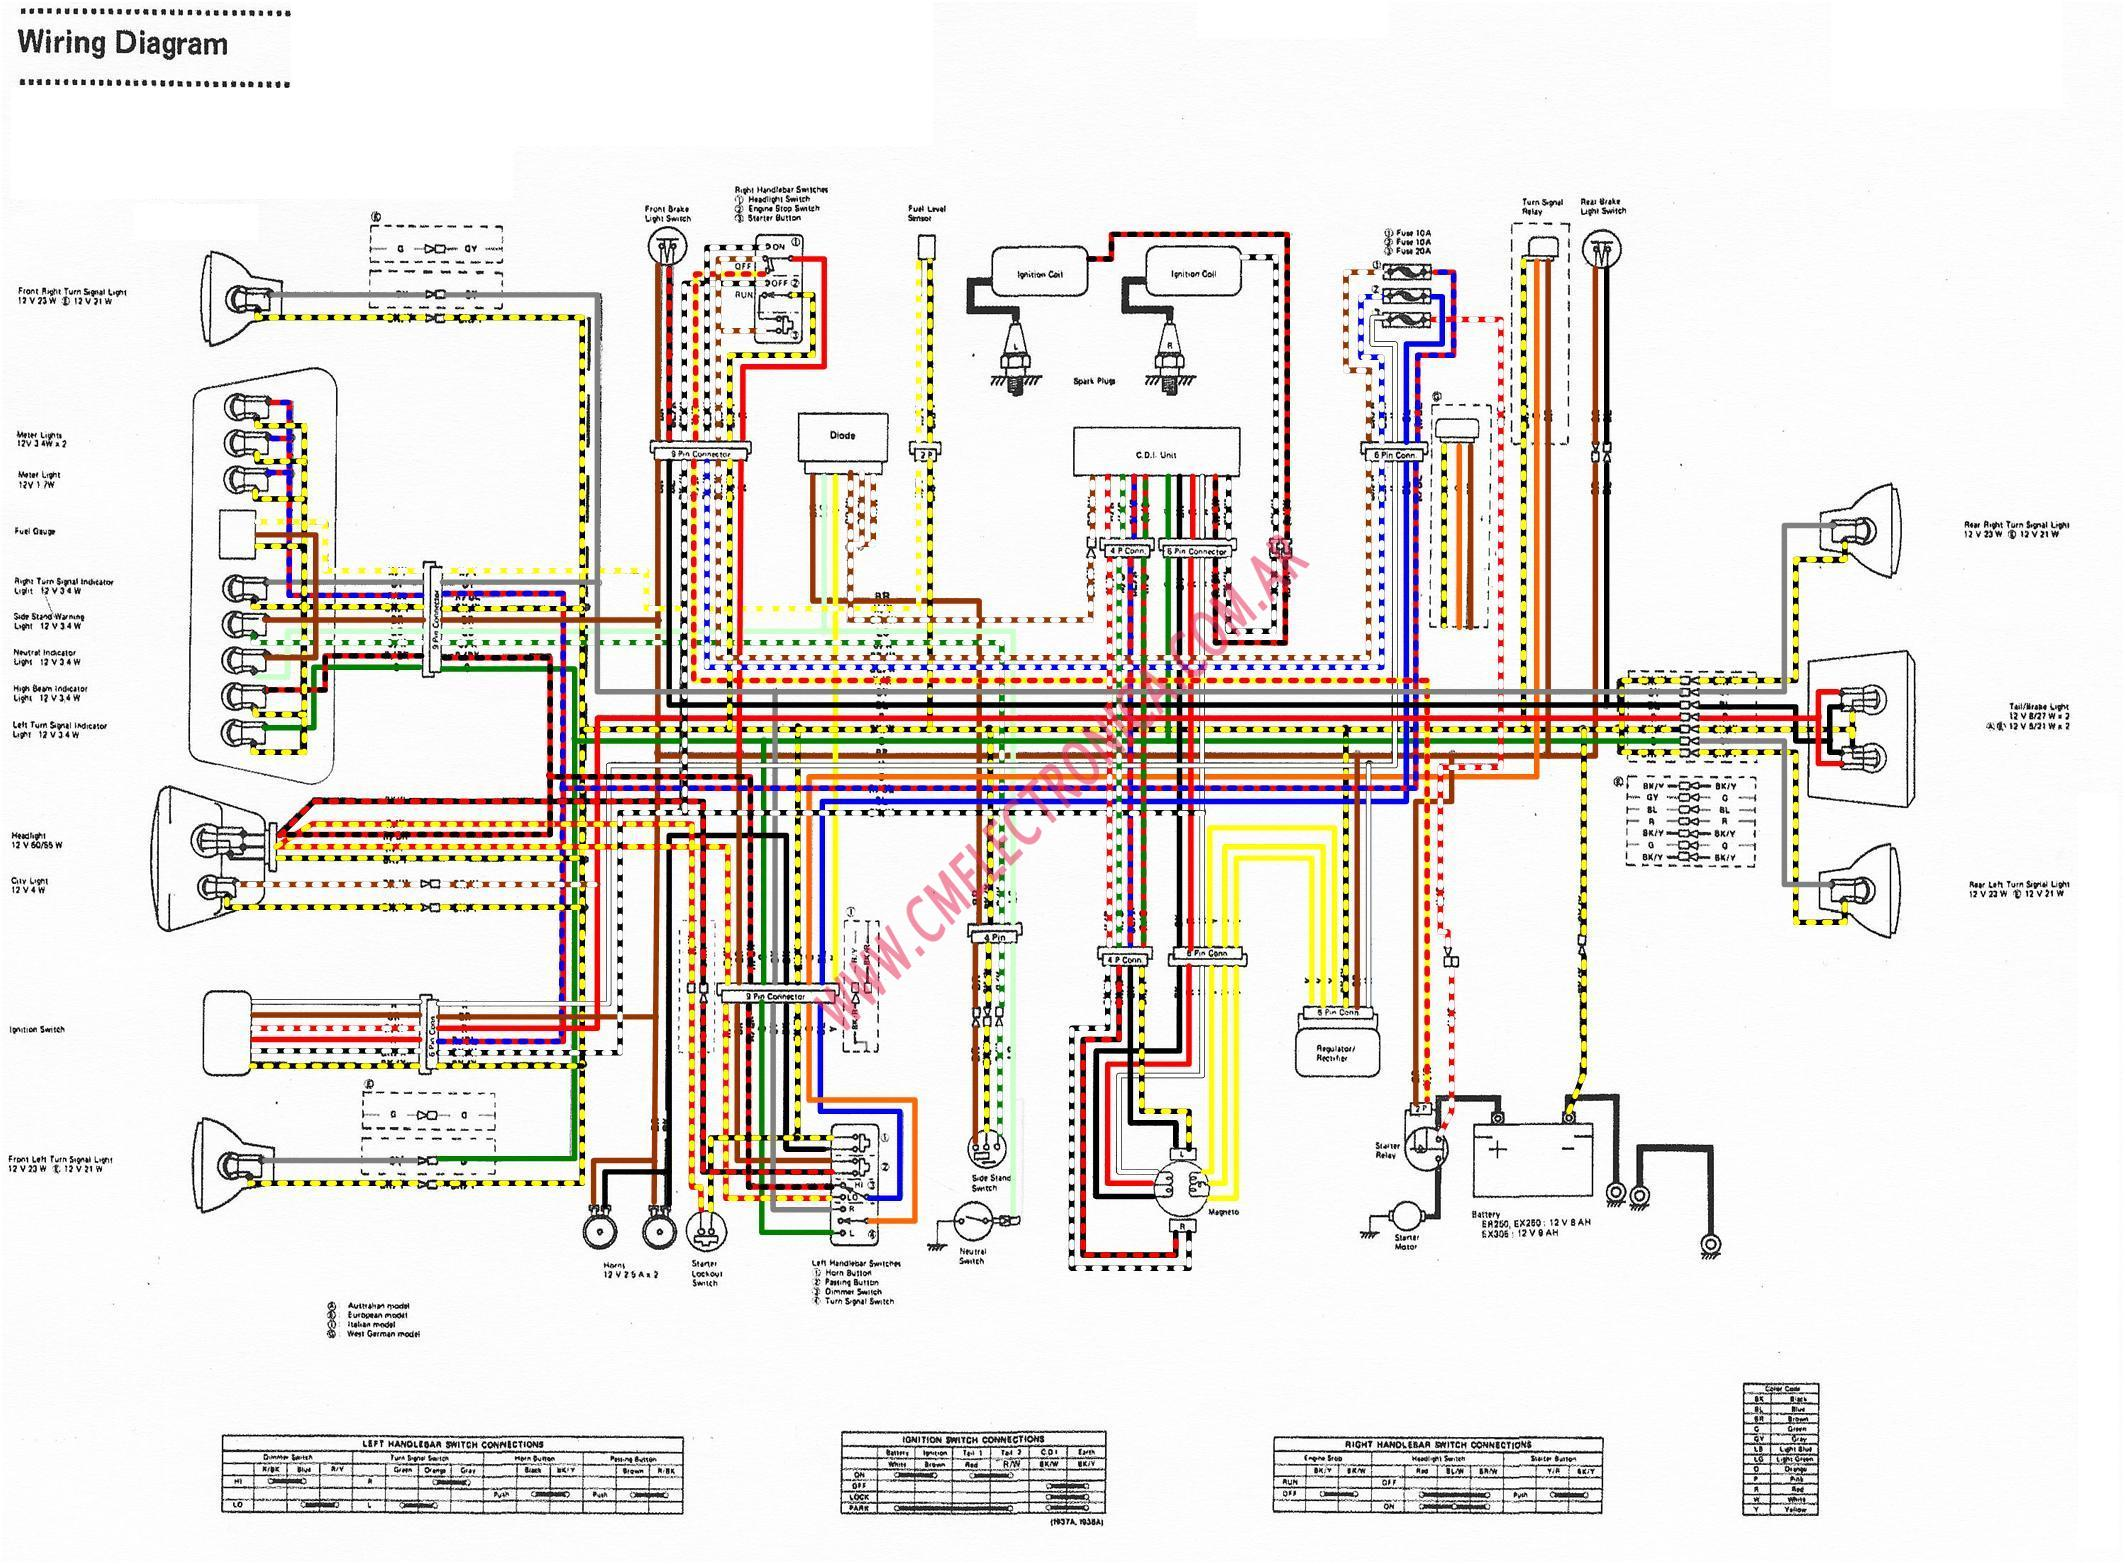 Kawasaki Ex500 Wiring Diagram Pdf And Schematics Electrical Diagrams Forum U2022 Ninja